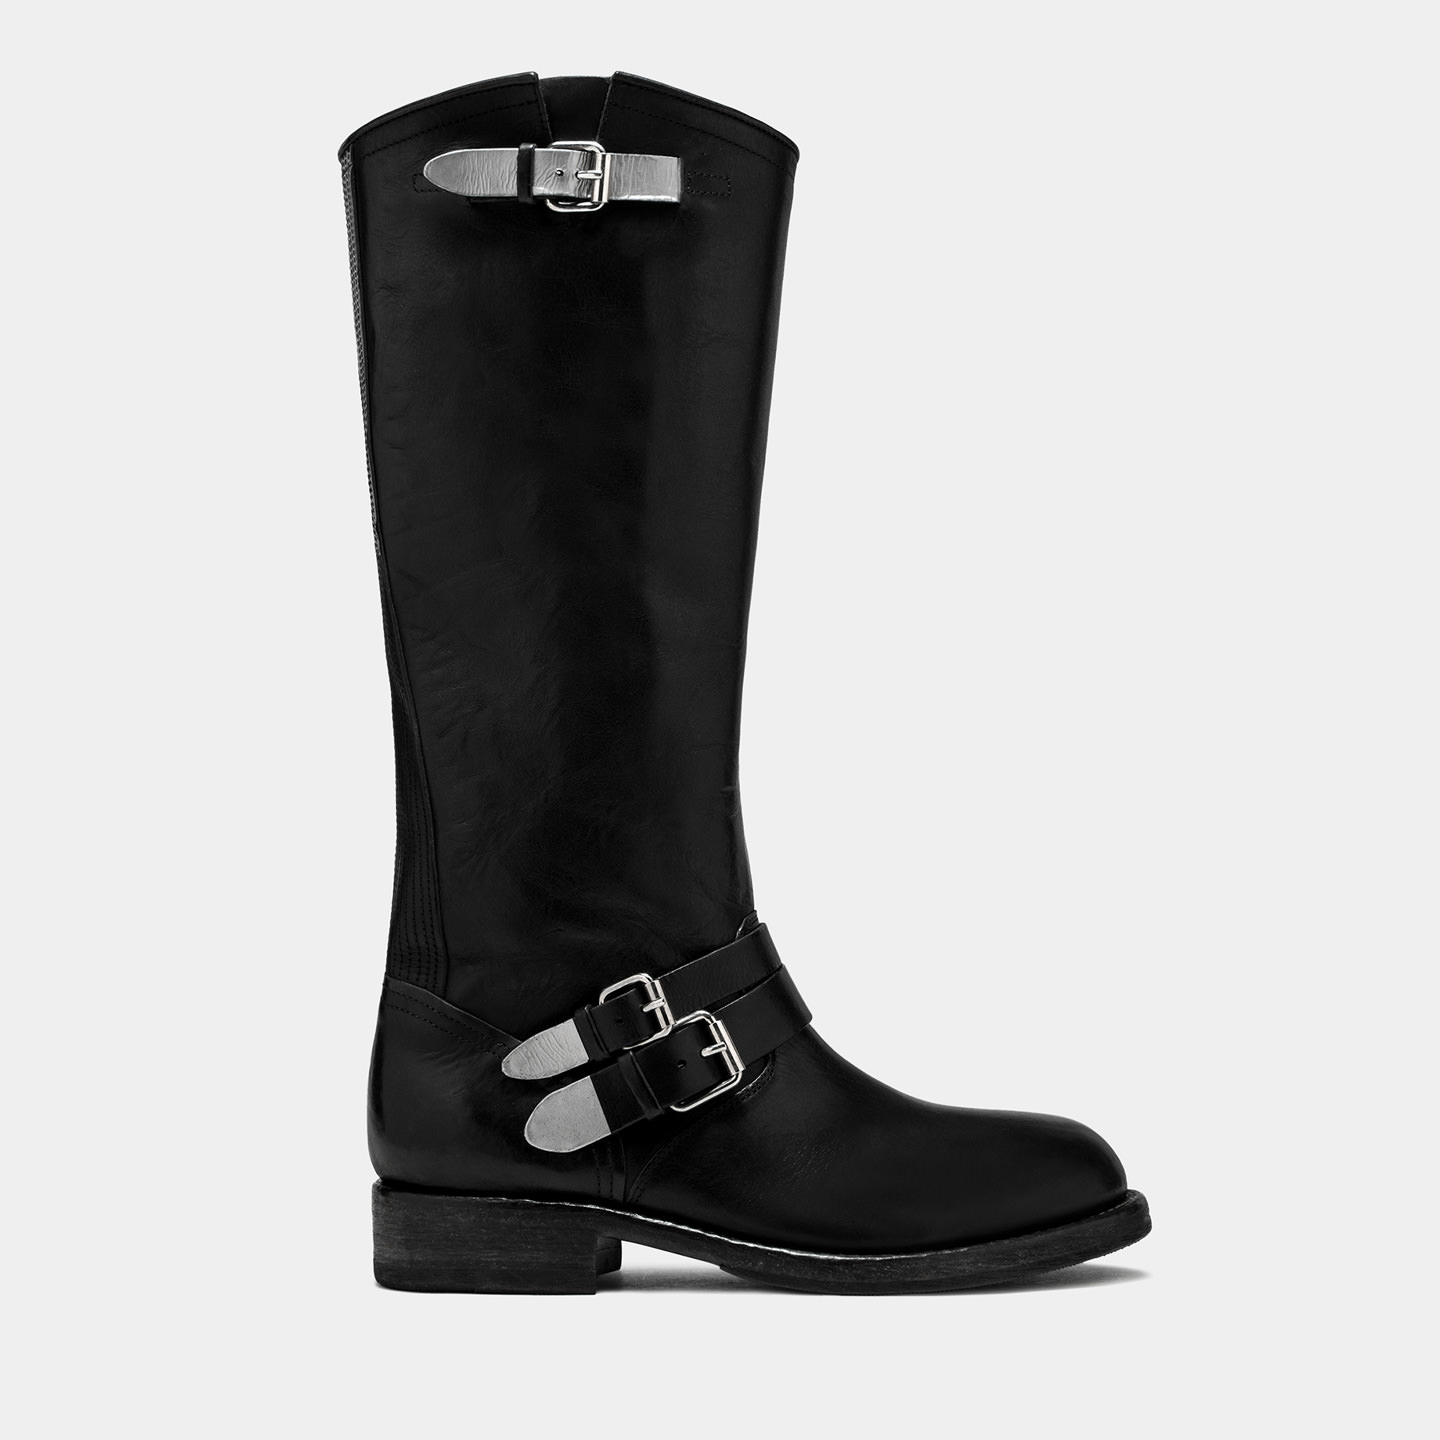 BUTTERO: LOU KNEE HIGH BIKER BOOTS IN BLACK LEATHER